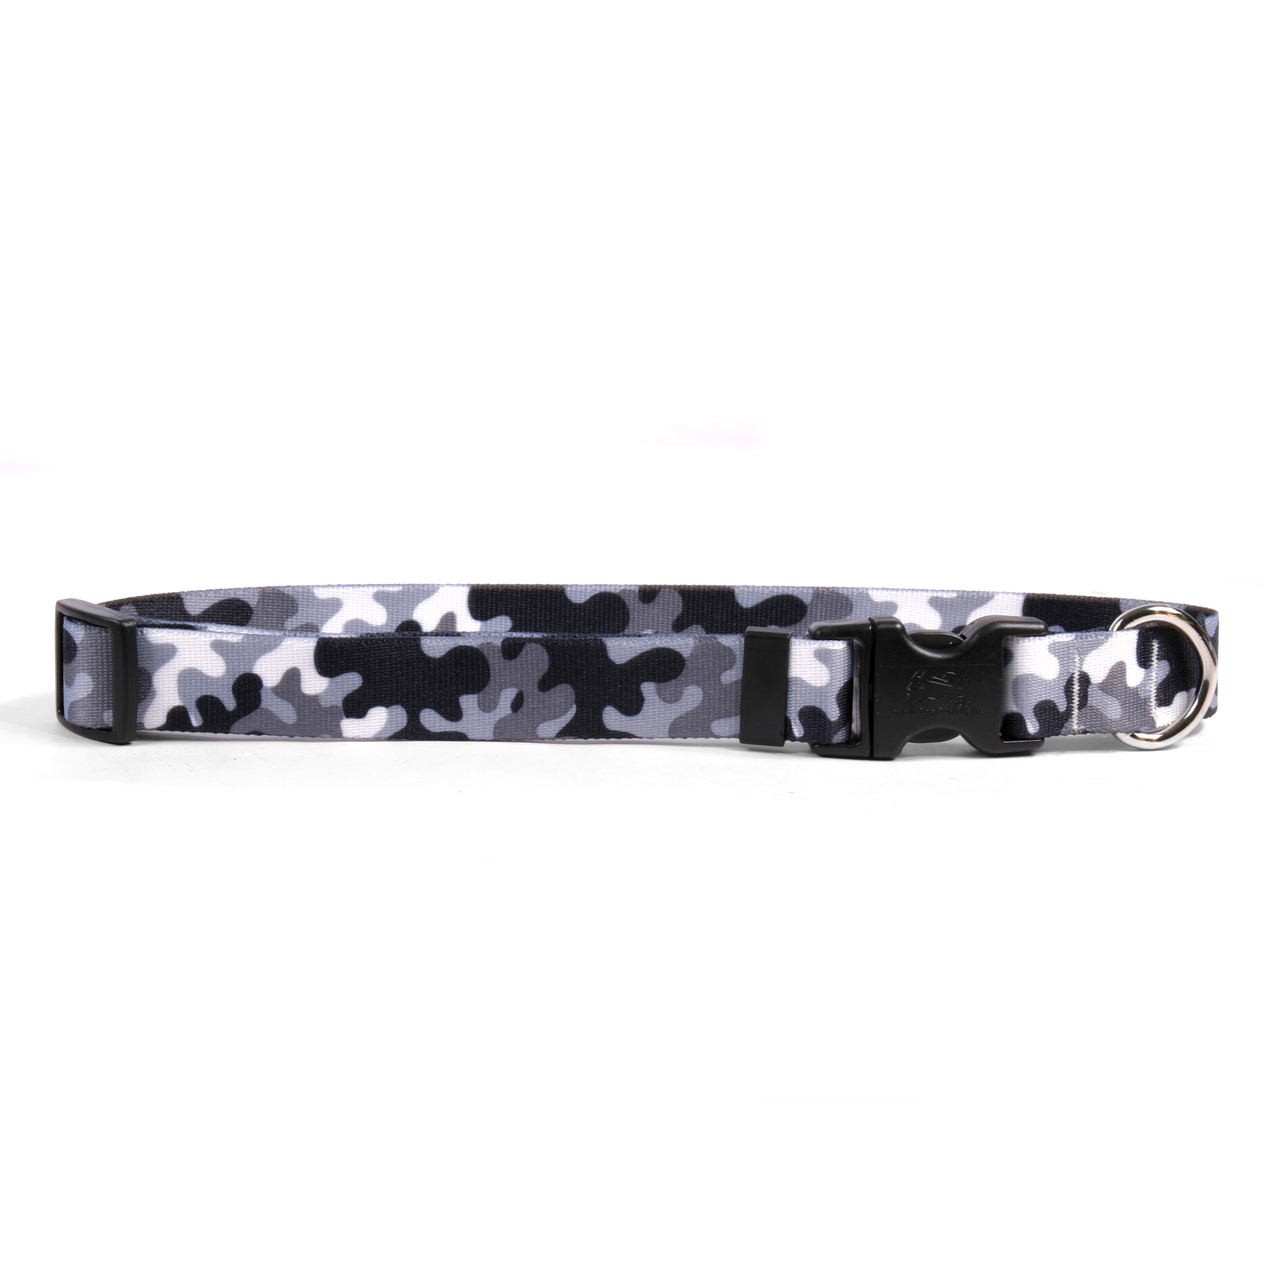 Yellow Dog Black and White Camo Dog Collar with Tag-A-Long